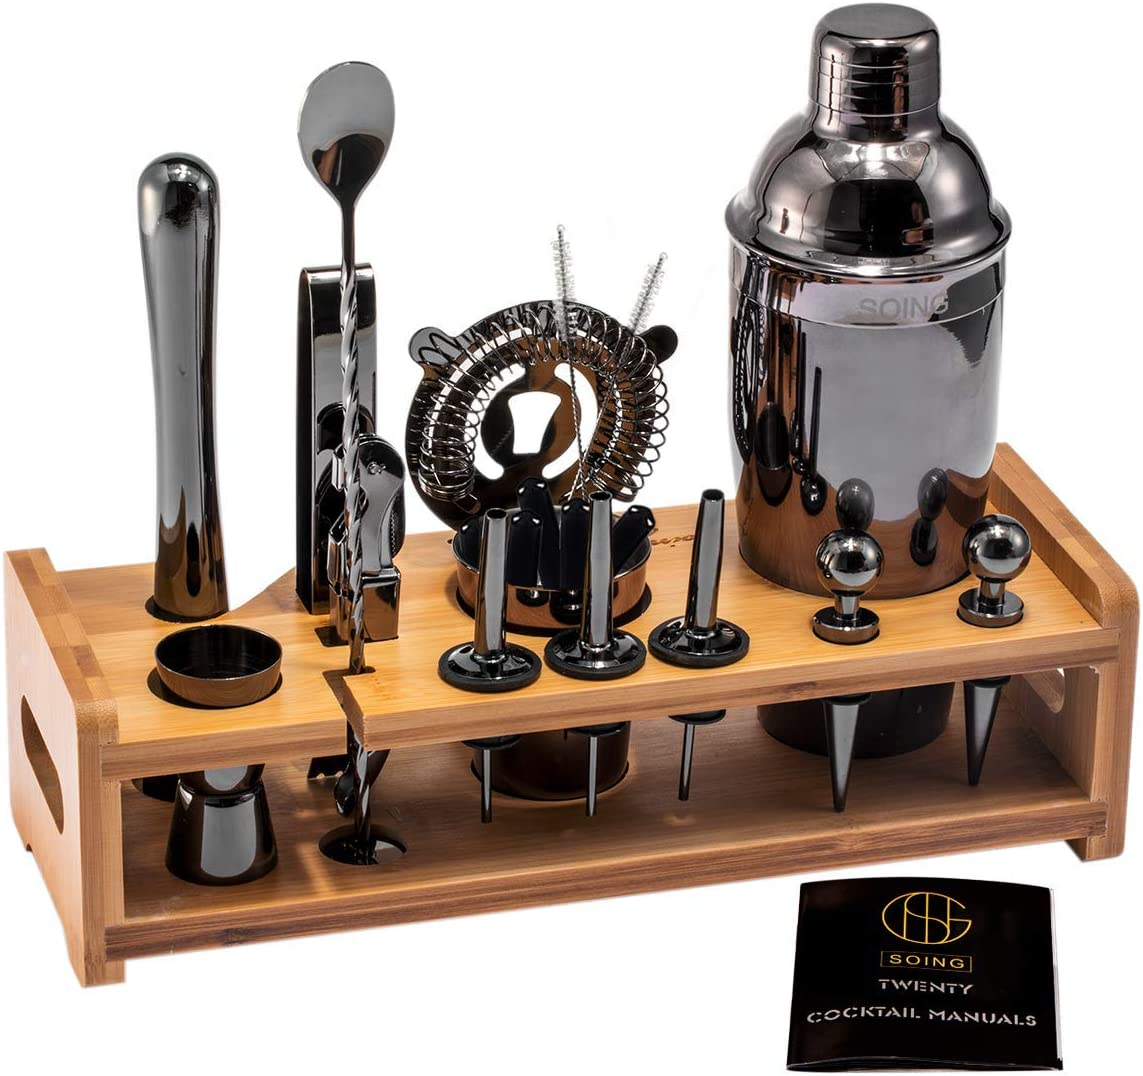 Soing Black 24-Piece Cocktail Shaker Set,Perfect Home Bartending Kit for Drink Mixing,Stainless Steel Bar Tools With Stand,Velvet Carry Bag & Recipes Included